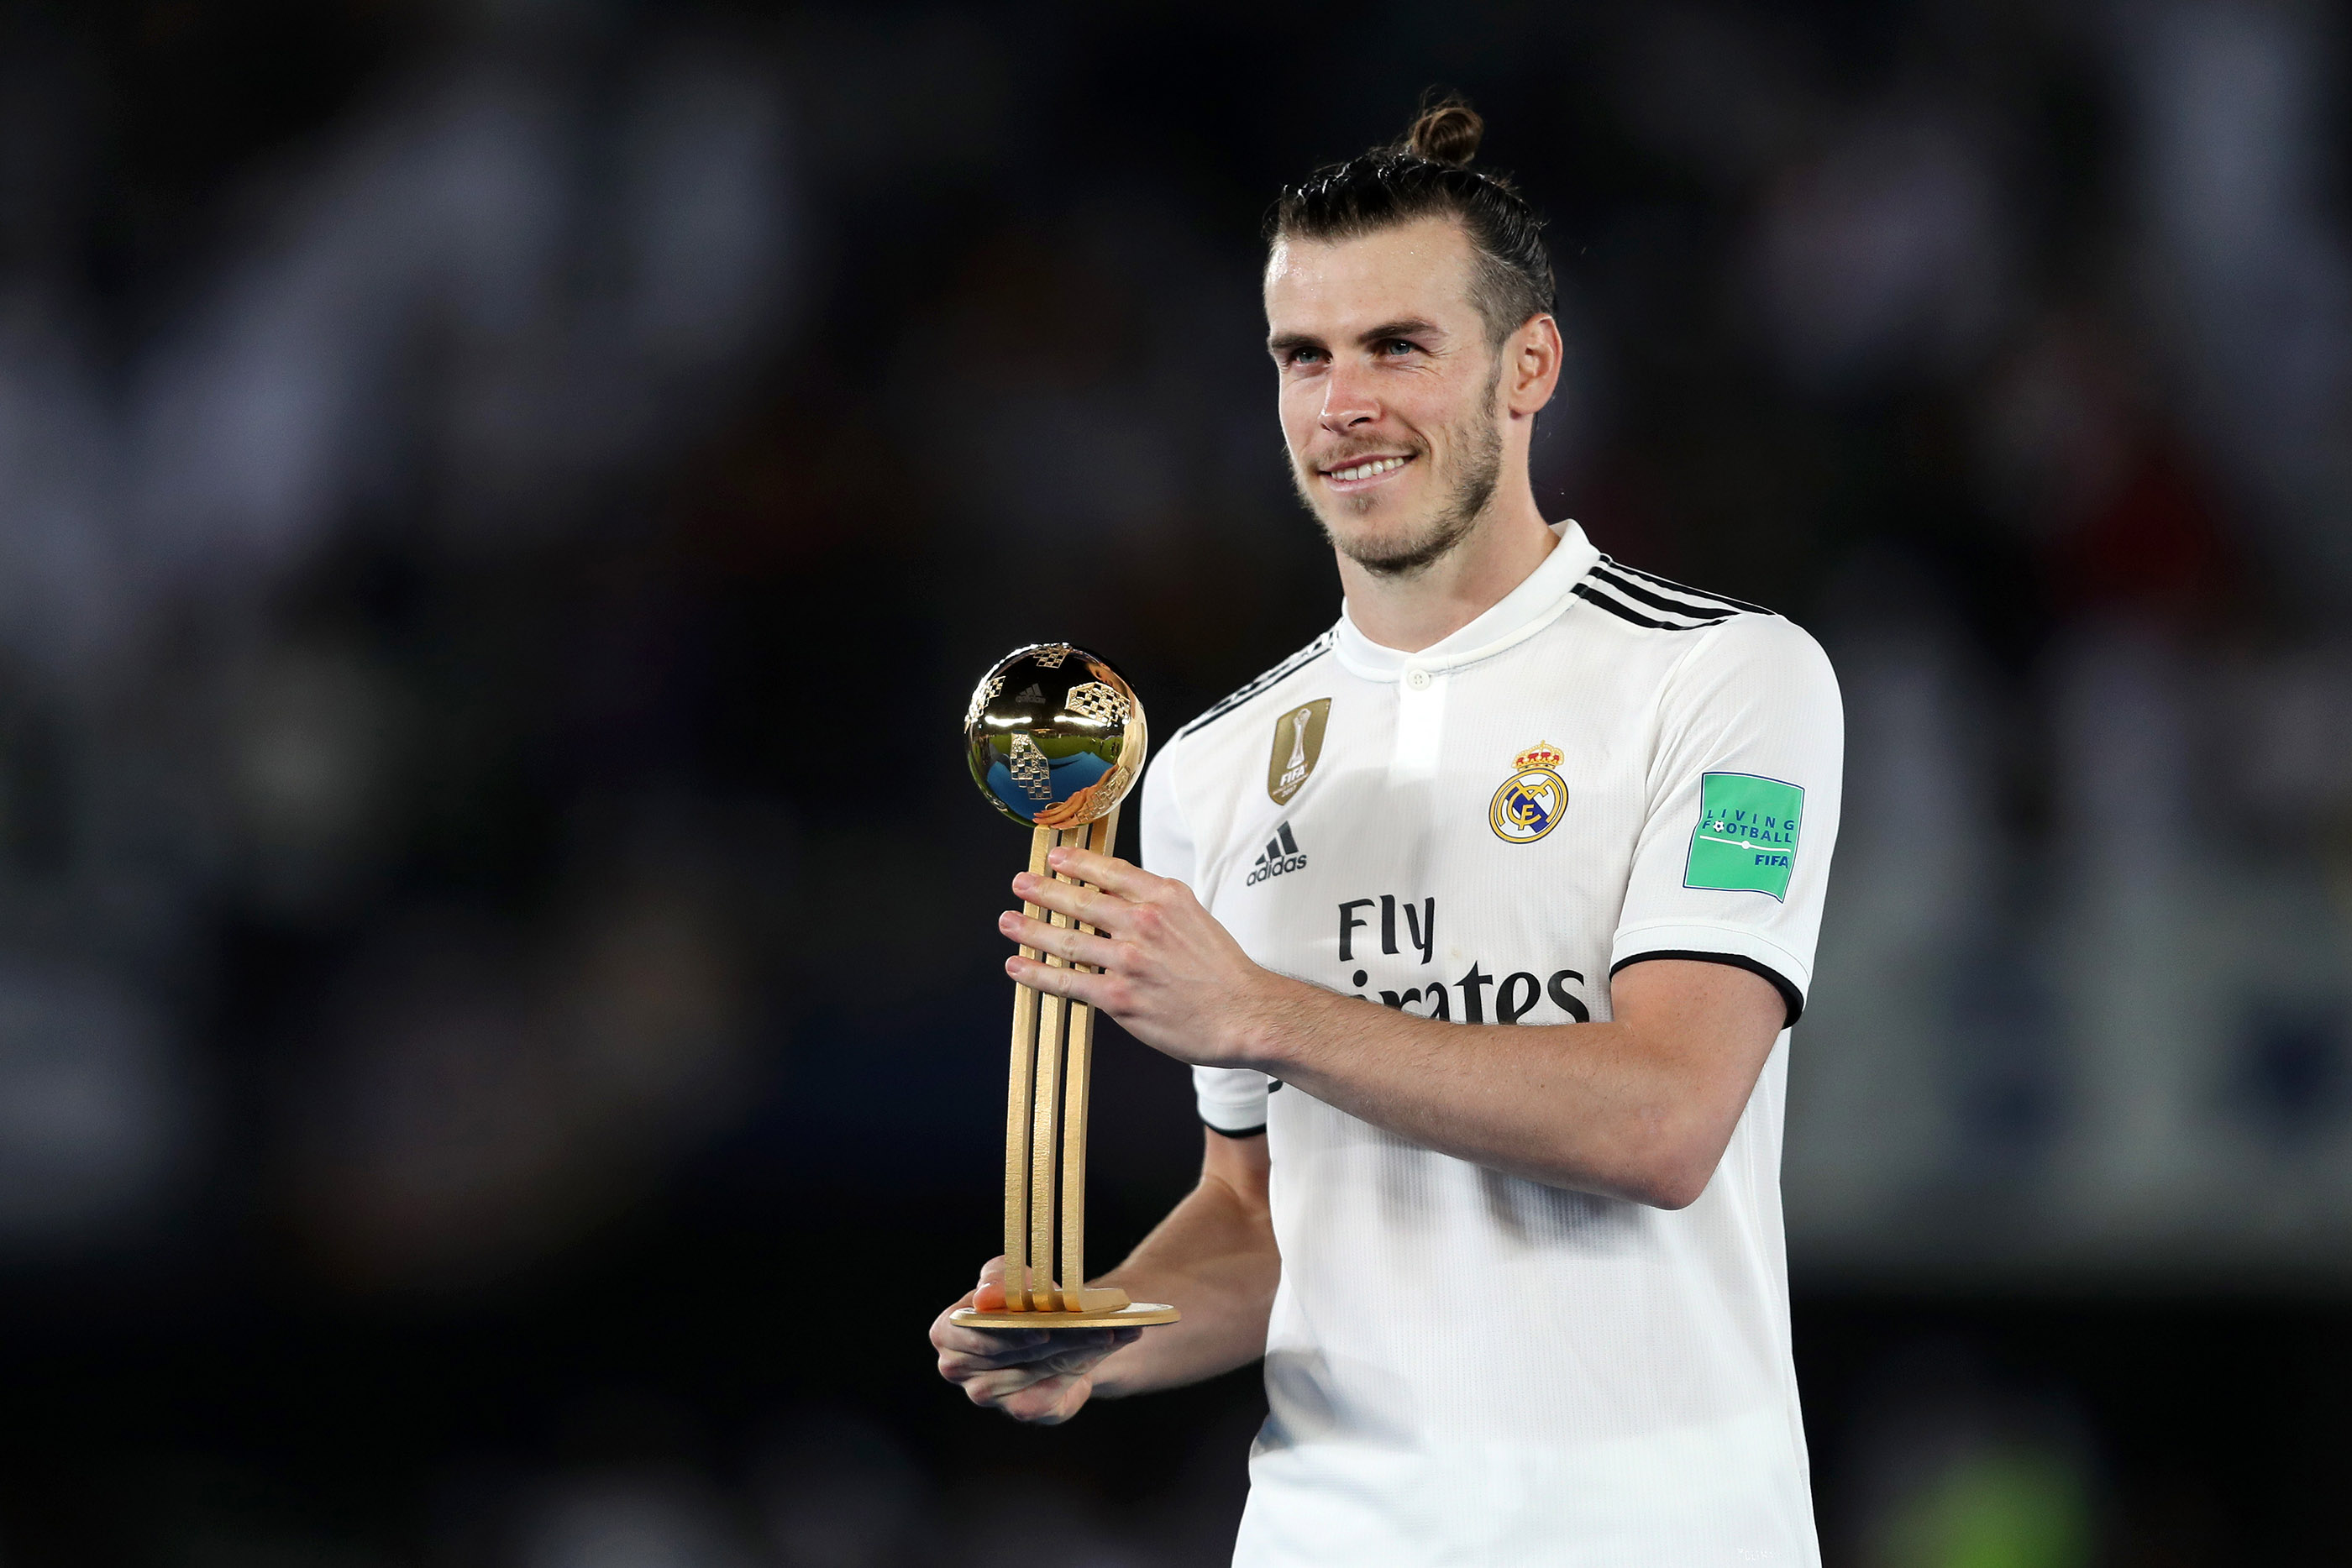 Gareth Bale of Real Madrid poses with his Adidas Golden Ball award after the FIFA Club World Cup UAE 2018 Final between Al Ain and Real Madrid at the Zayed Sports City Stadium on December 22, 2018 in Abu Dhabi, United Arab Emirates.